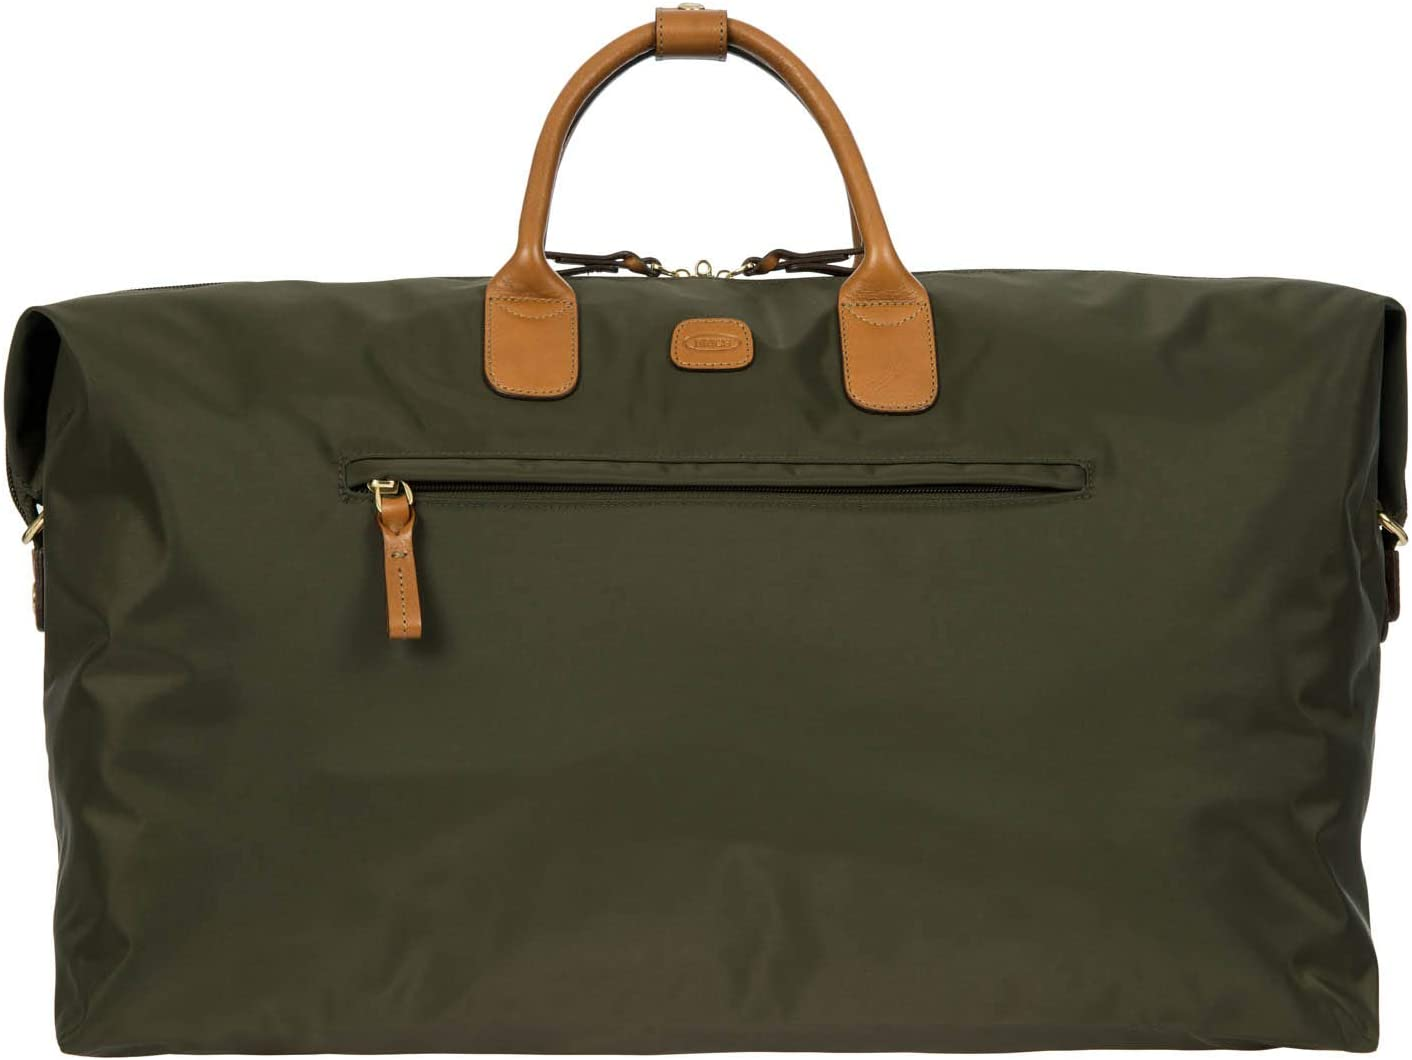 Bric's x-Travel 2.0 22 Inch Deluxe Cargo Overnight/Weekend Duffel Bag, Olive, One Size